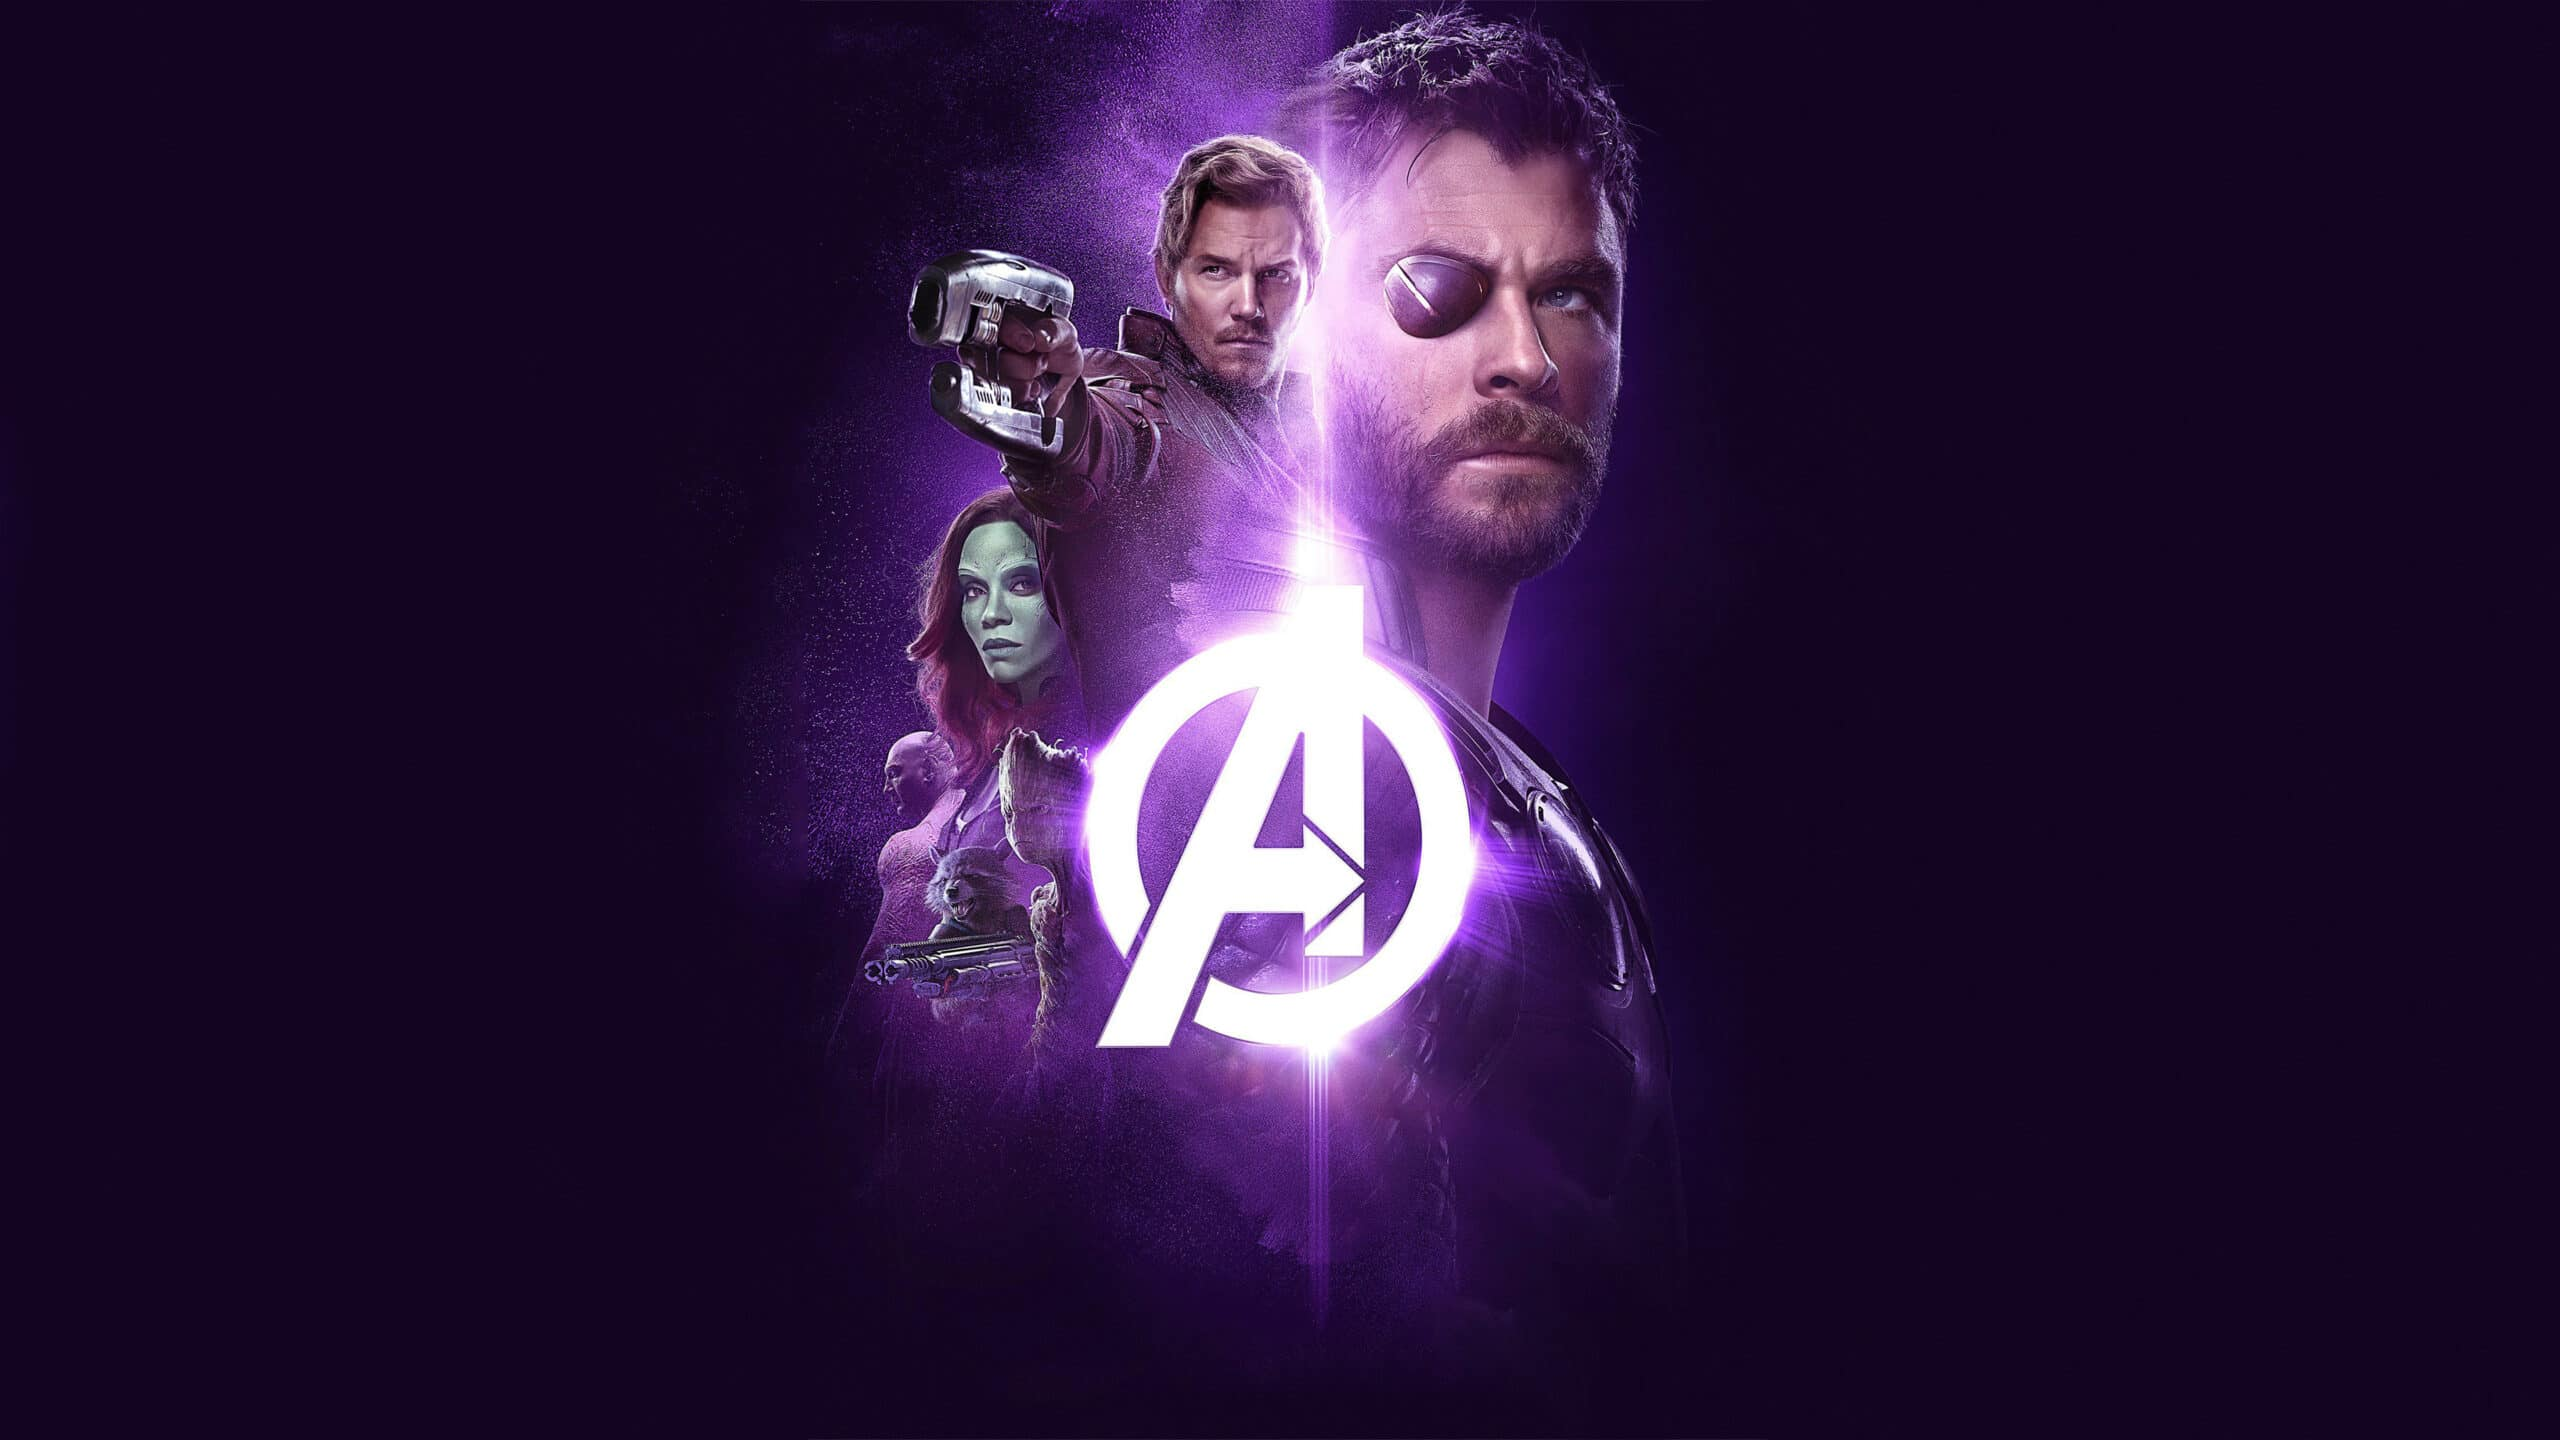 avengers thor images